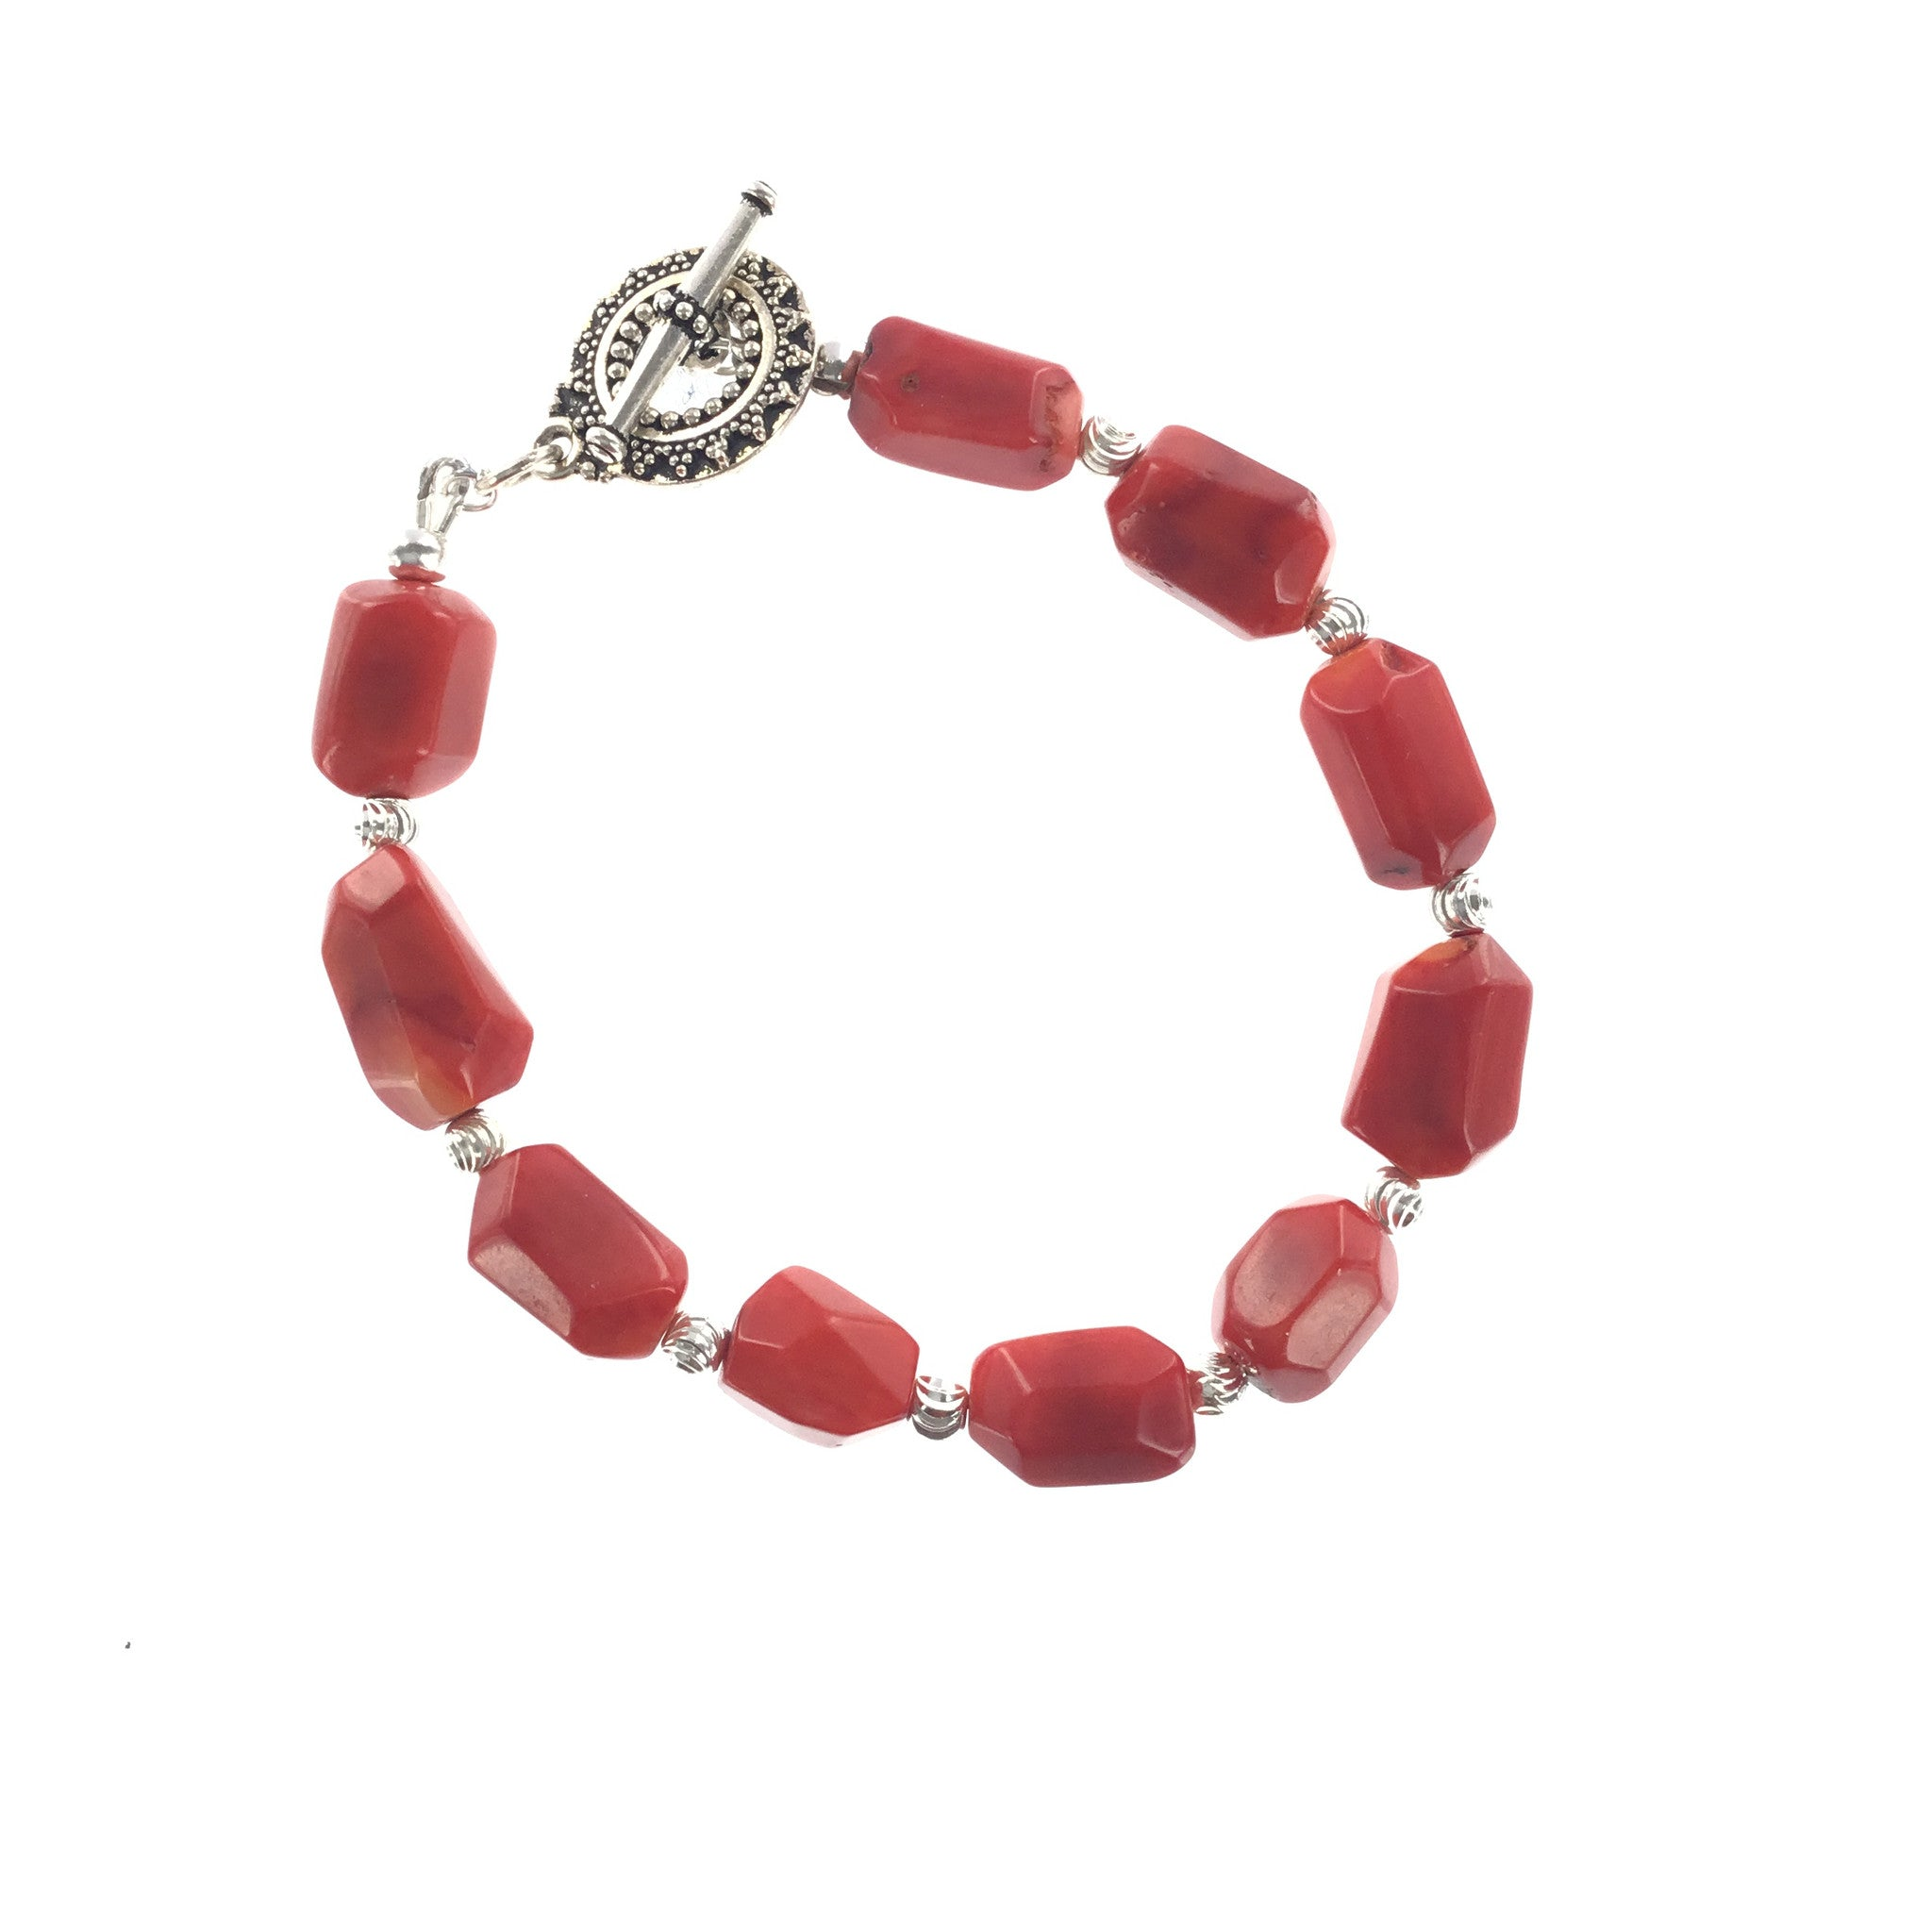 Red Coral and Silver Bracelet - Real Chic Boutique  - 2